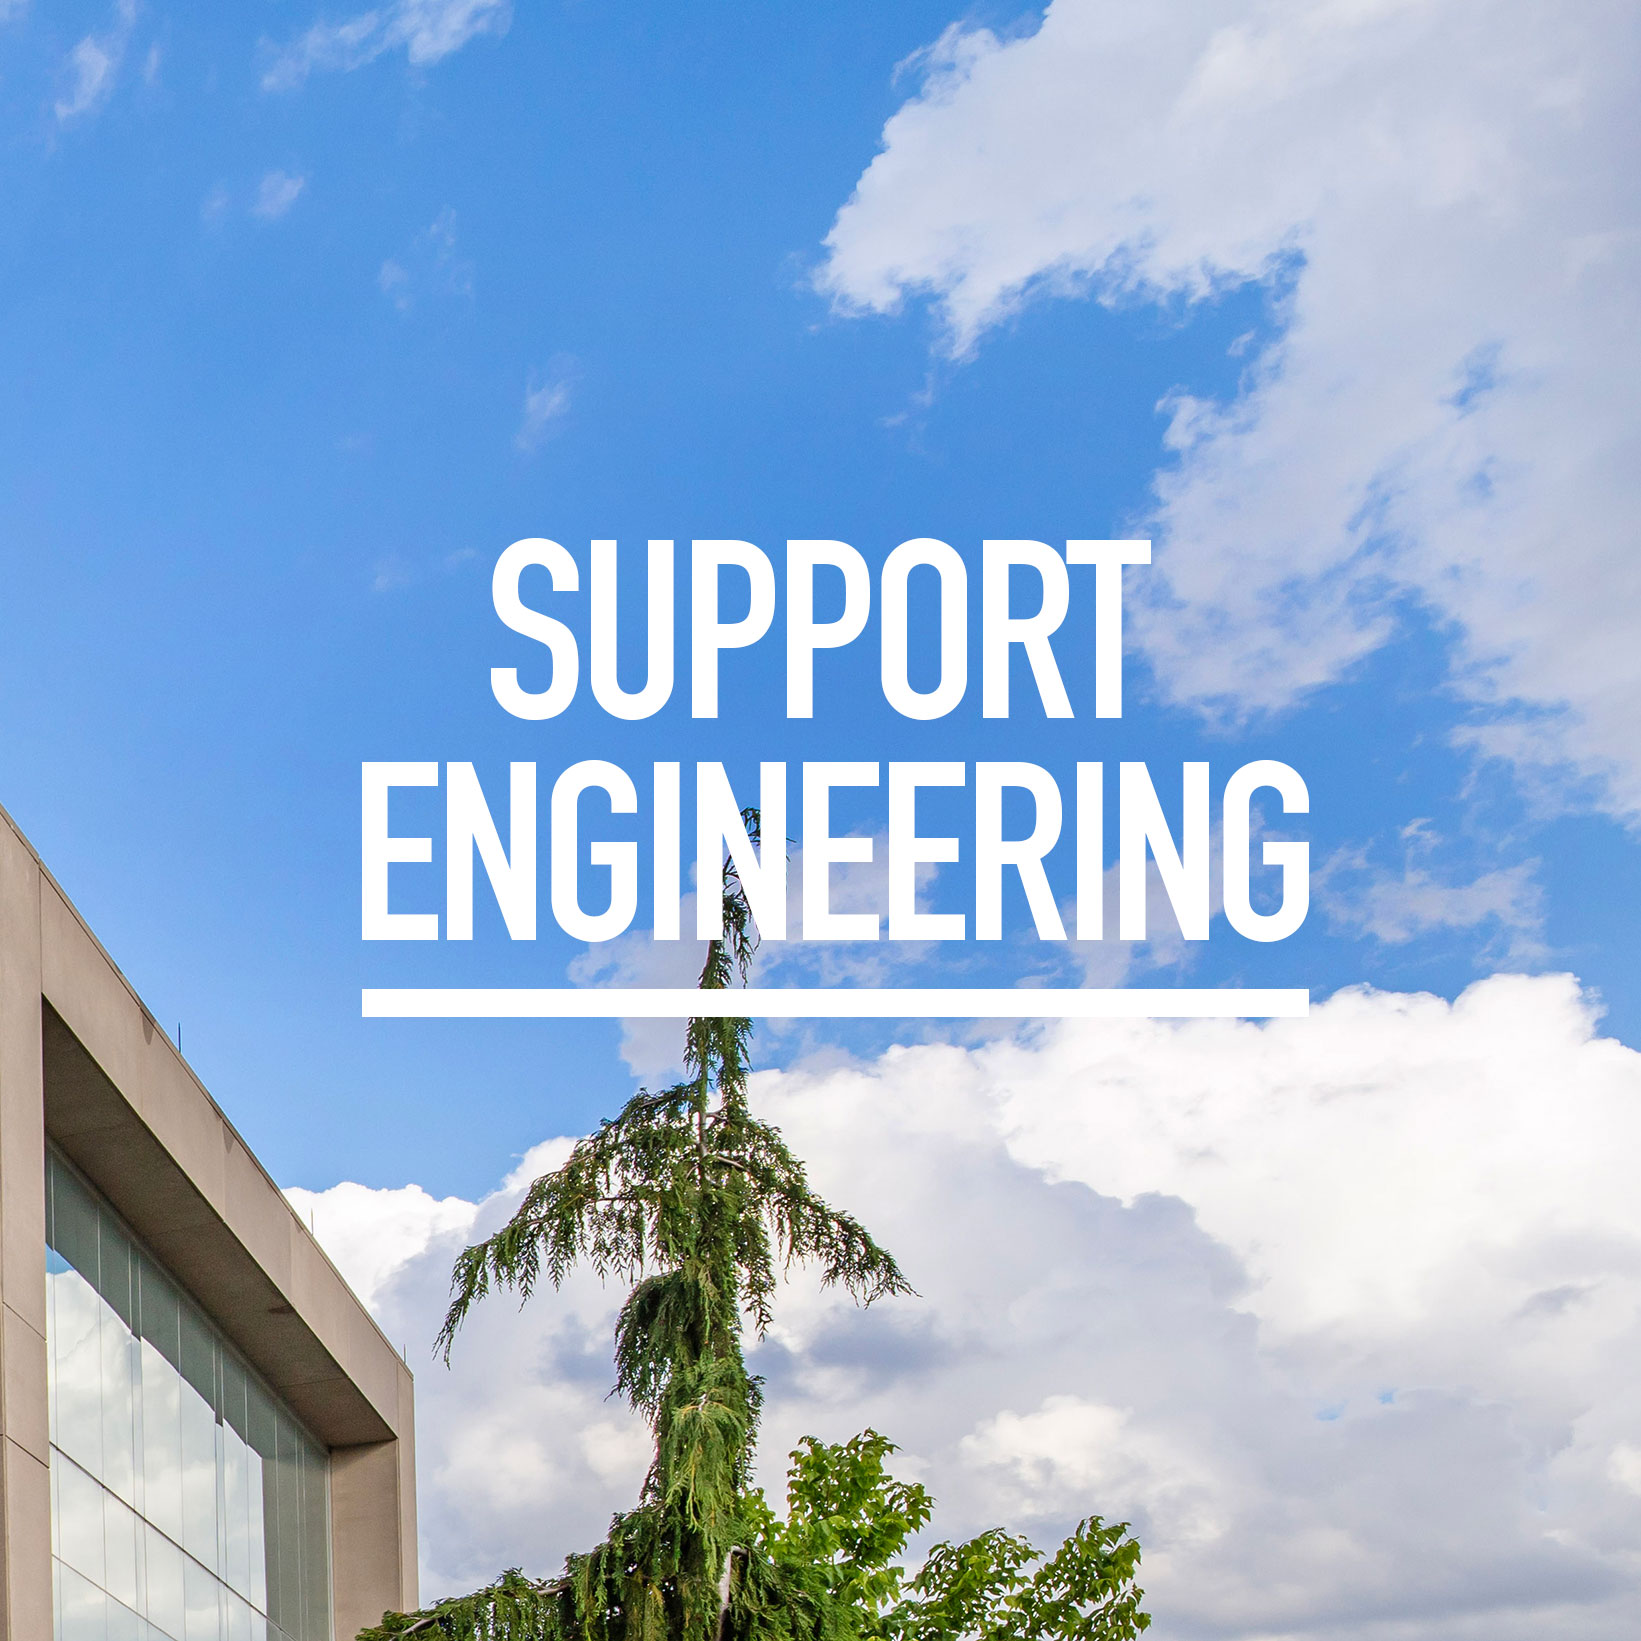 Ed Lumley Centre for Engineering Innovation with words Support Engineering